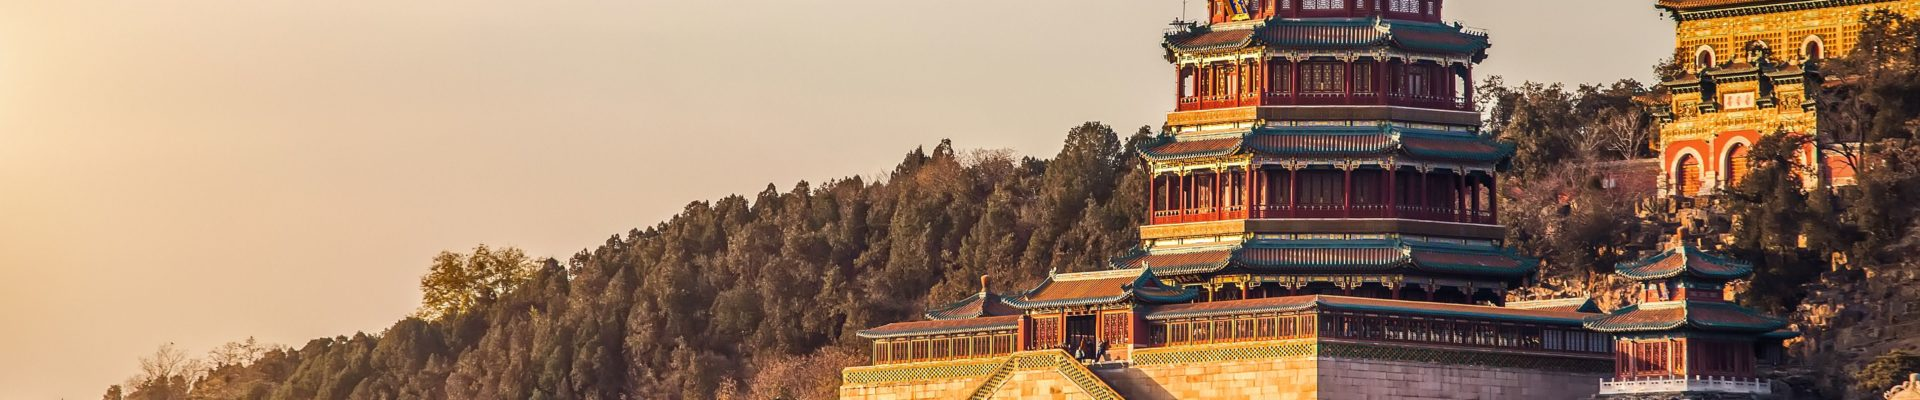 the-summer-palace-in-beijing-564897011-5a5369cd842b17003763ec8f